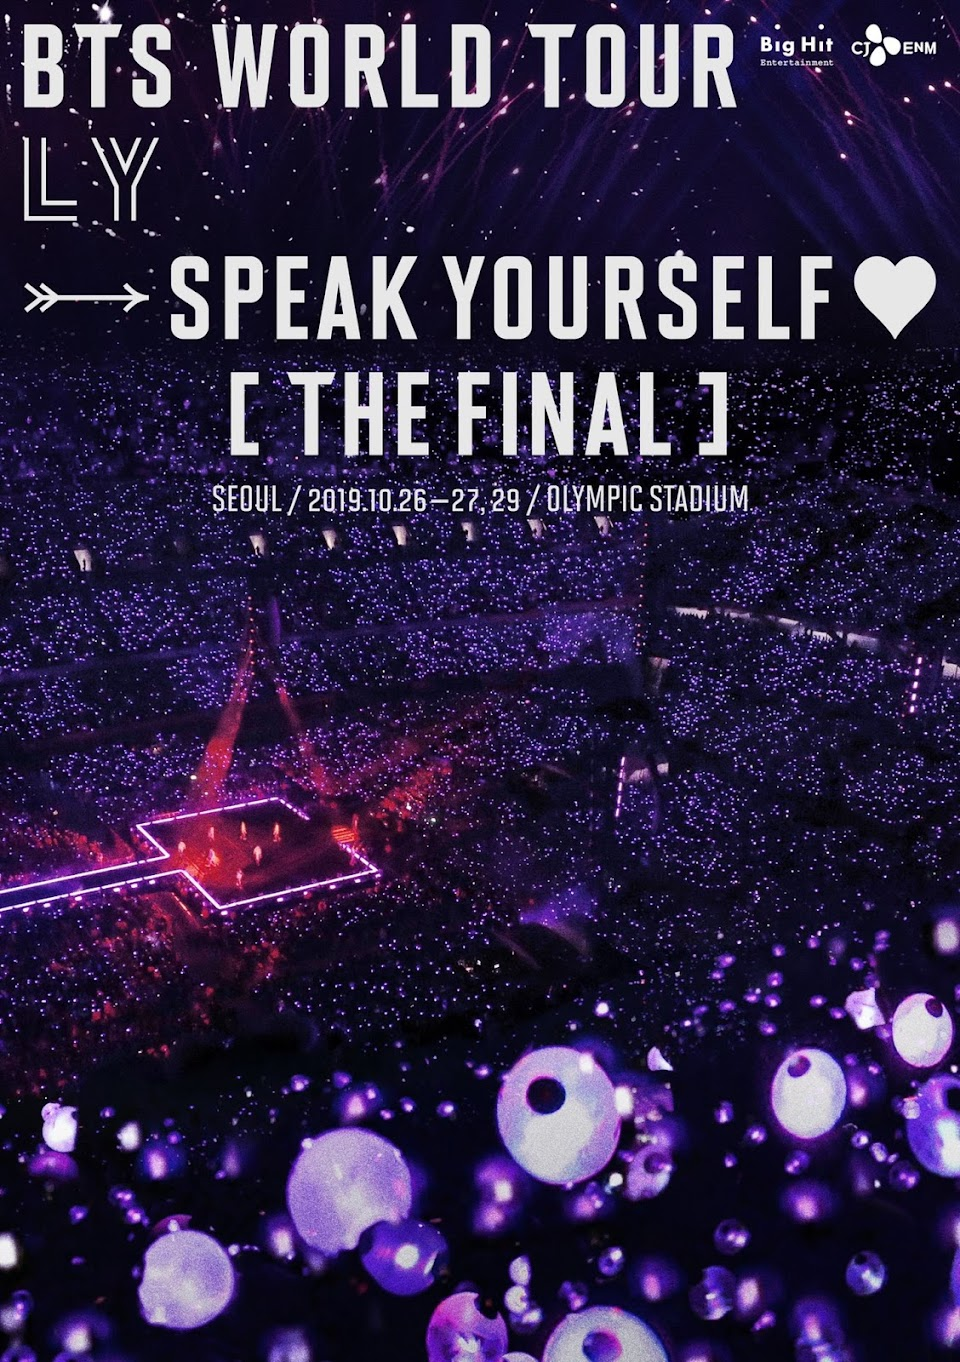 bts speak yourself concert live 1